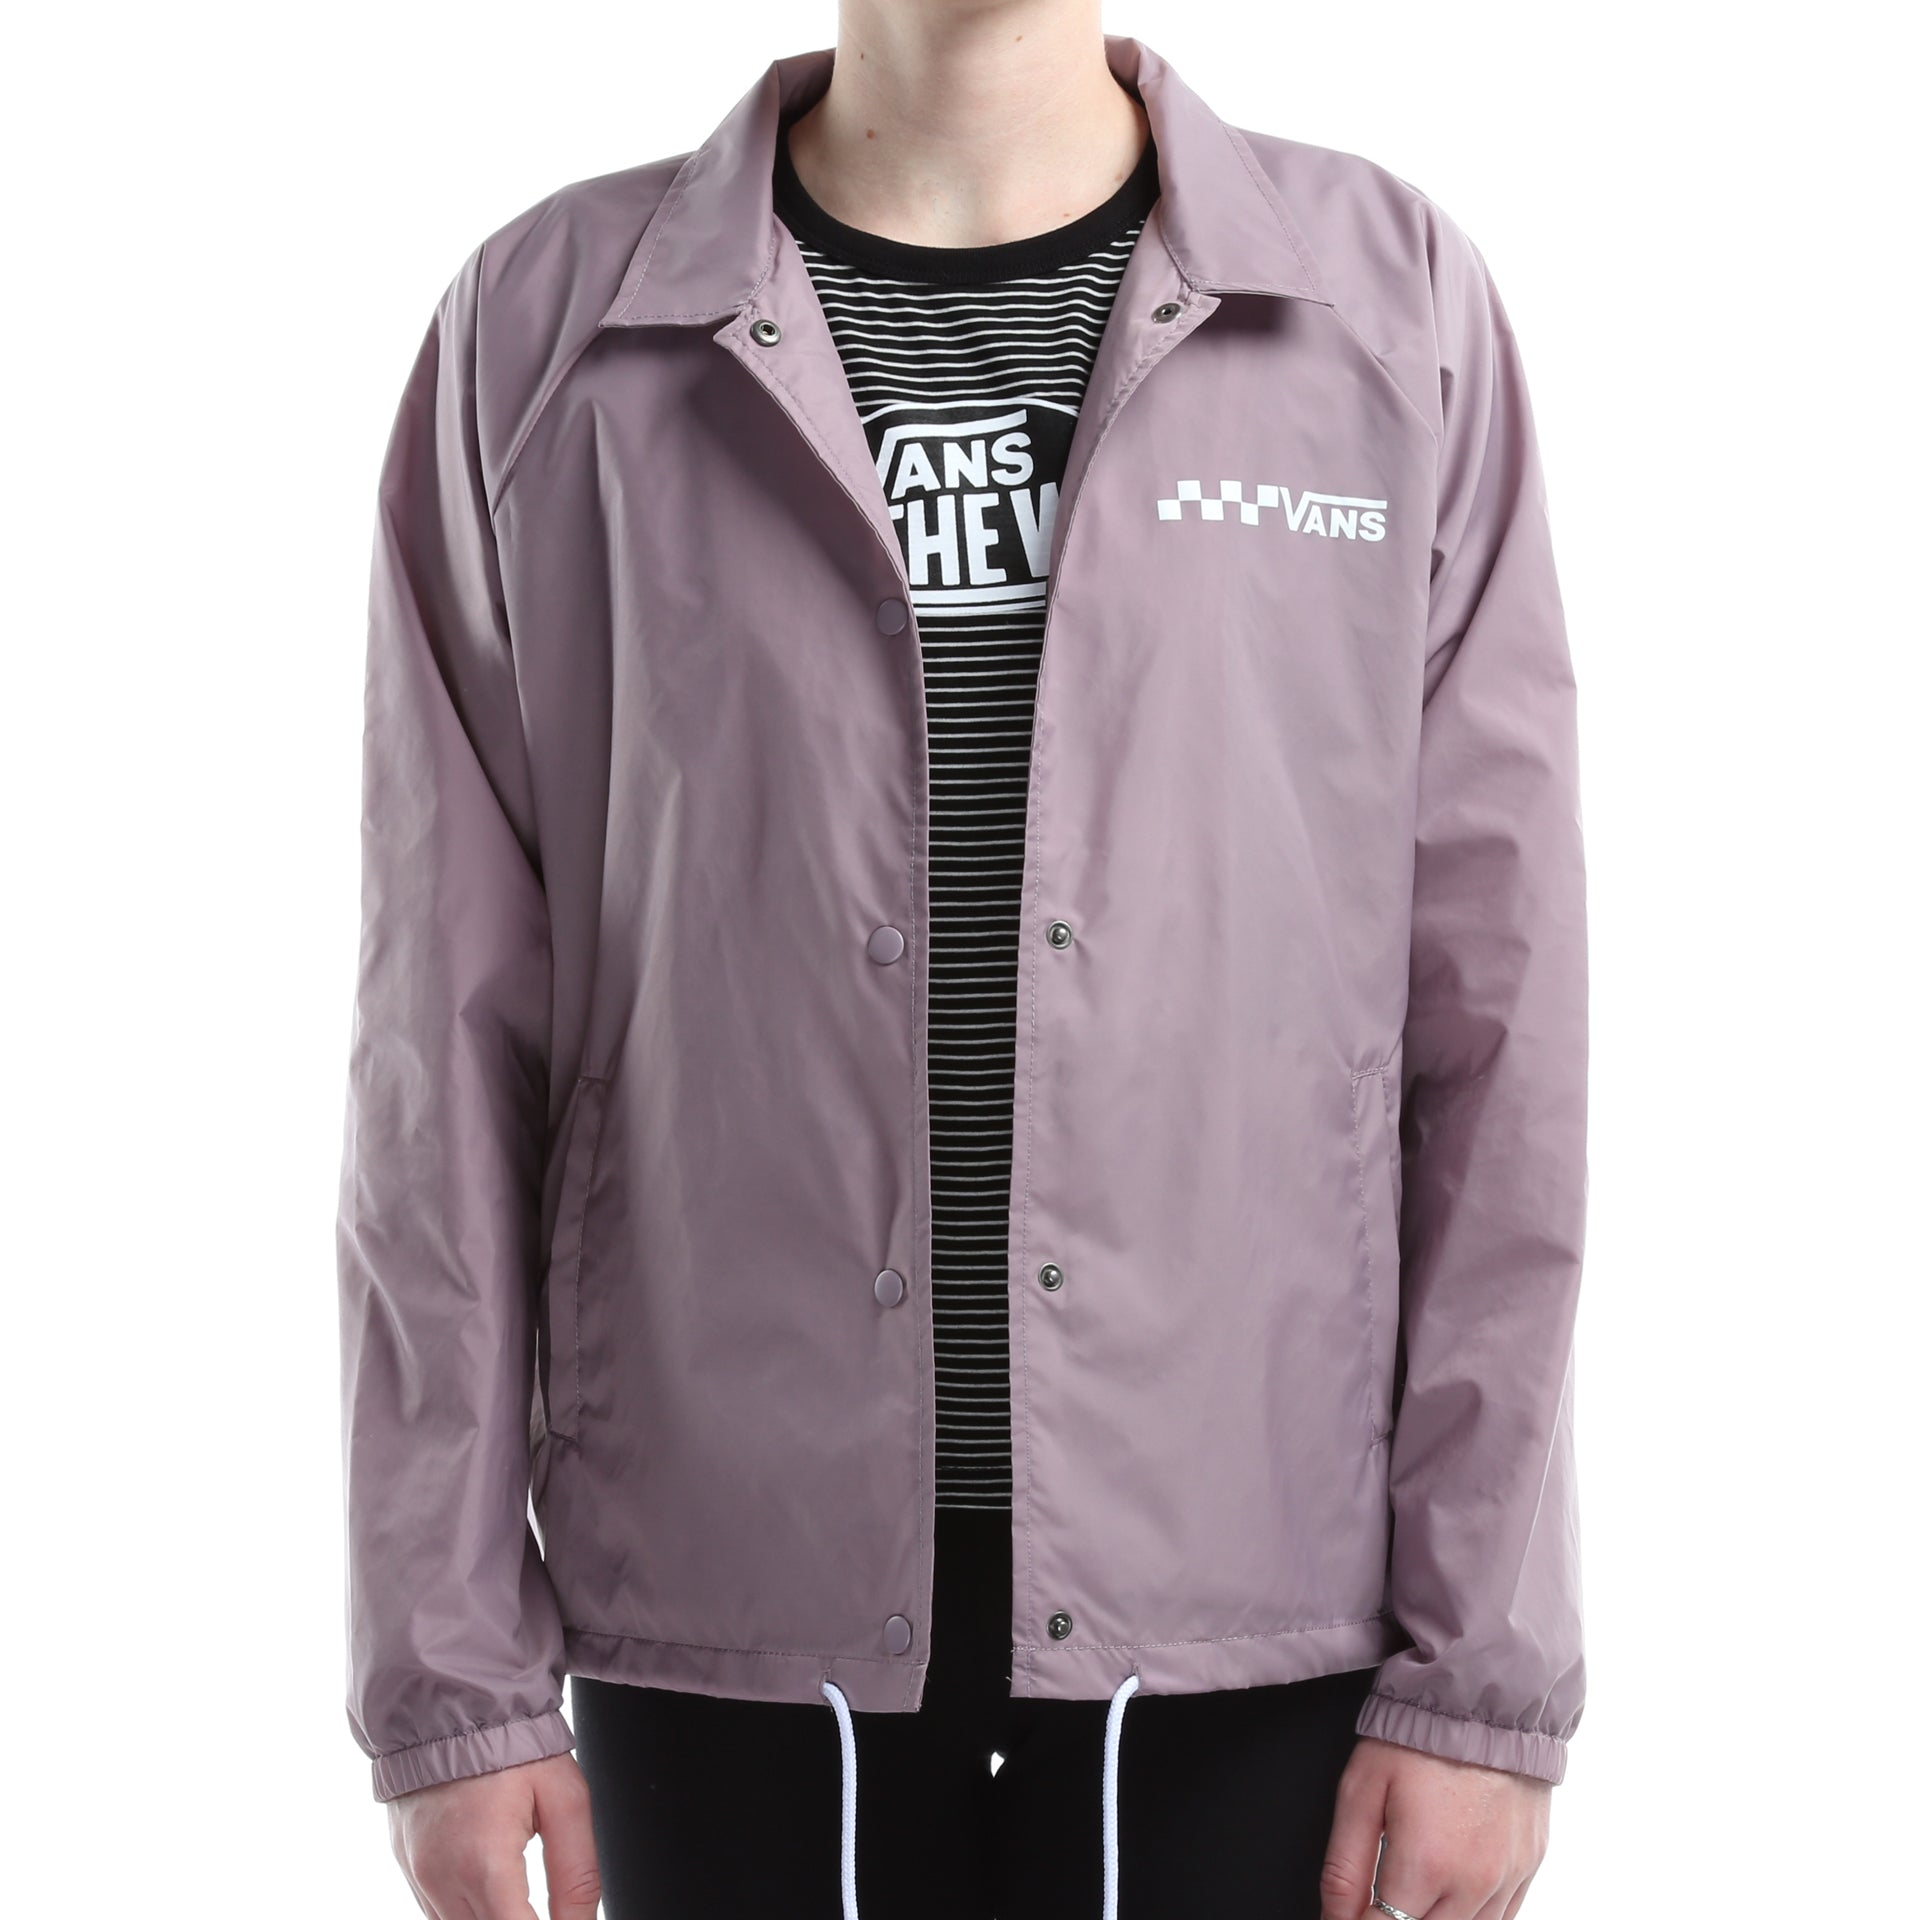 vans jacket for womens